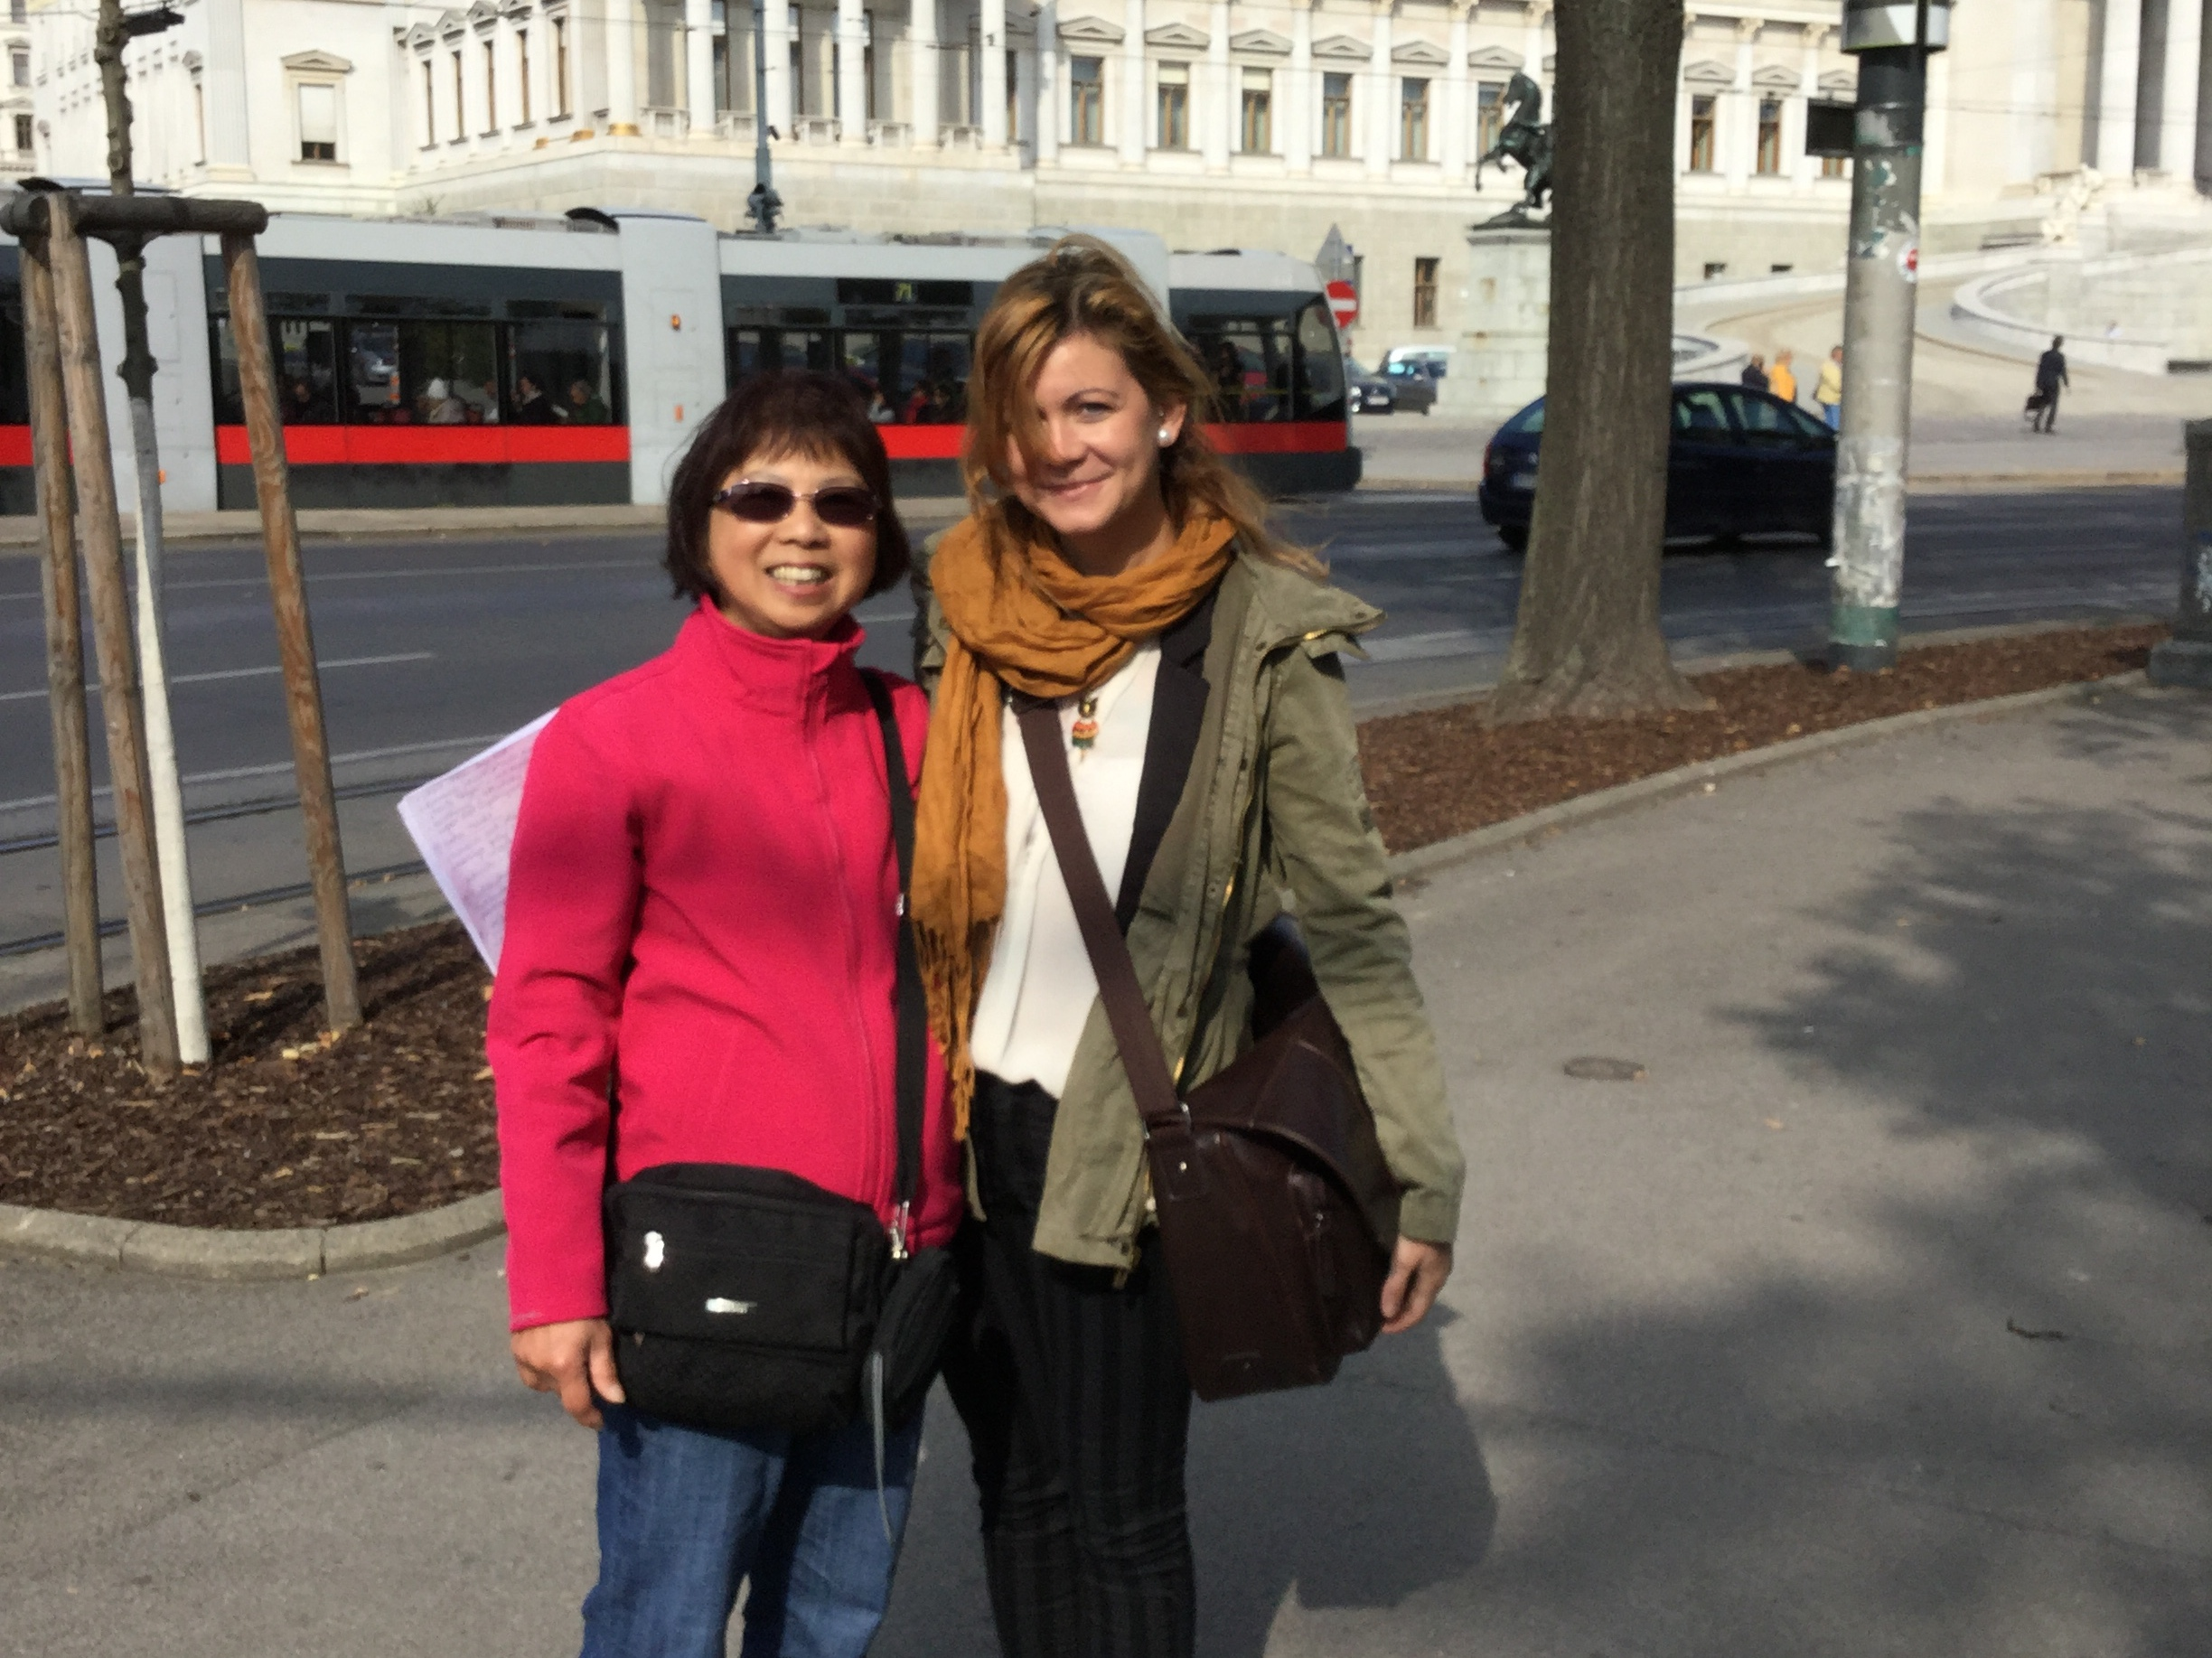 A Vienna Greeter and her guest in front of the Austrian parliament